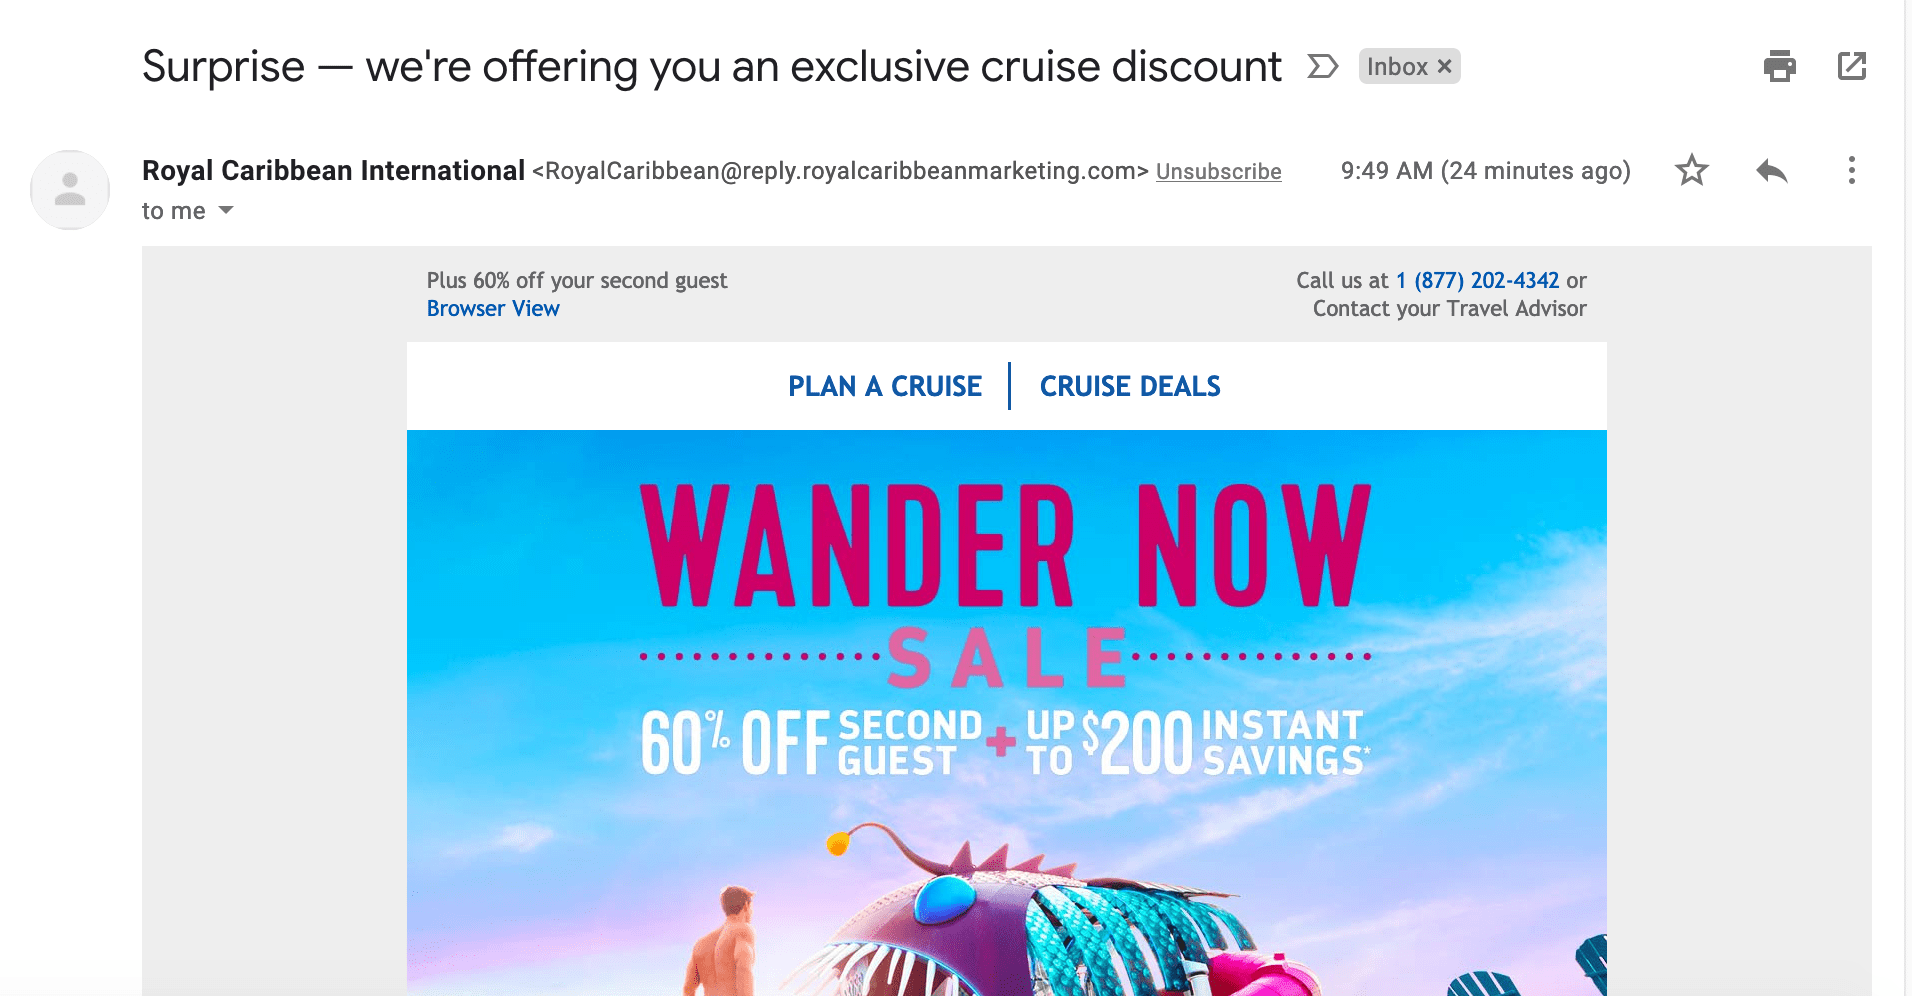 Royal Caribbean email